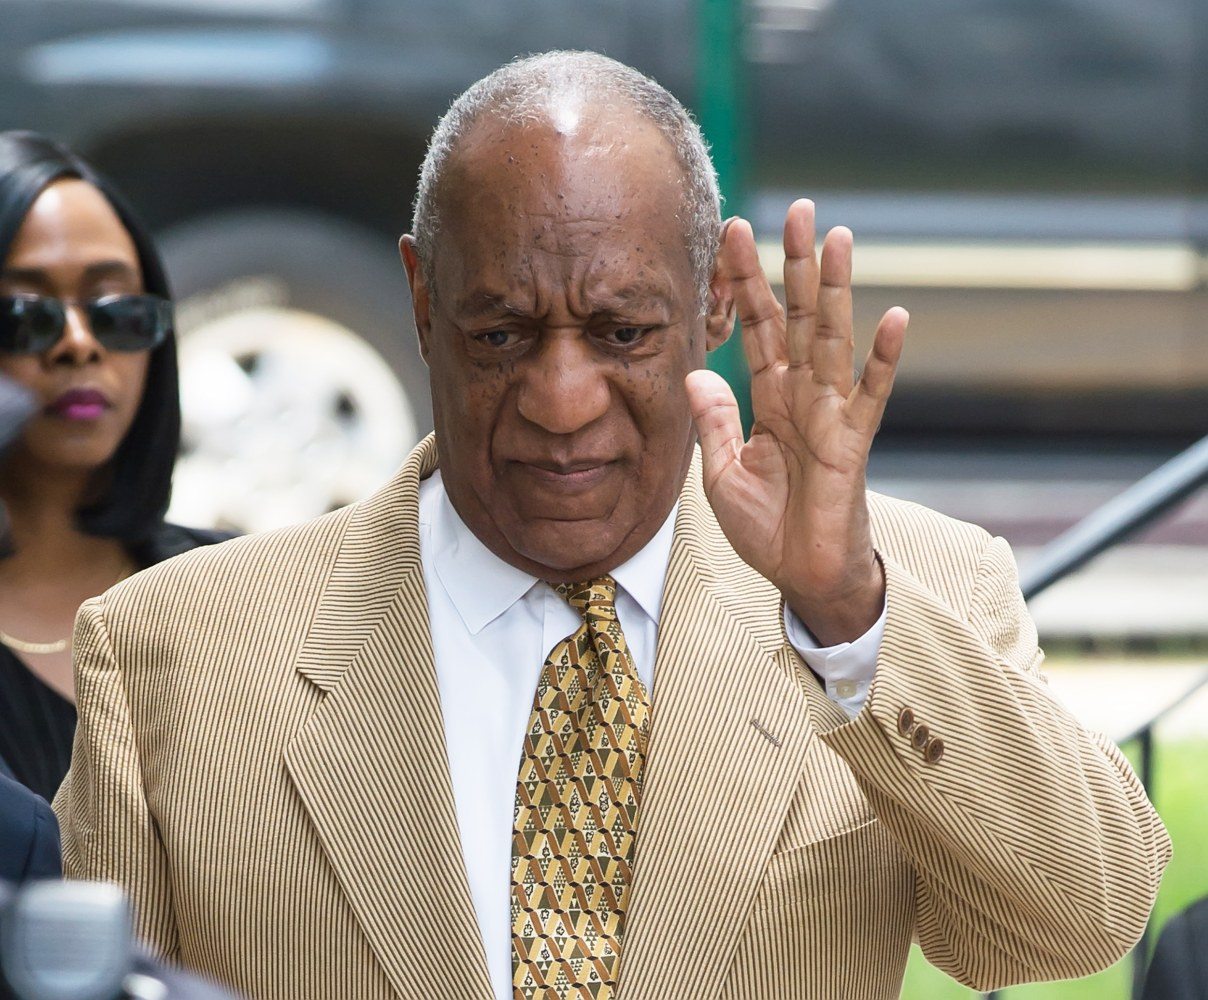 Bill Cosby Sex Assault Case: Judge Will Allow Another Accuser to Testify